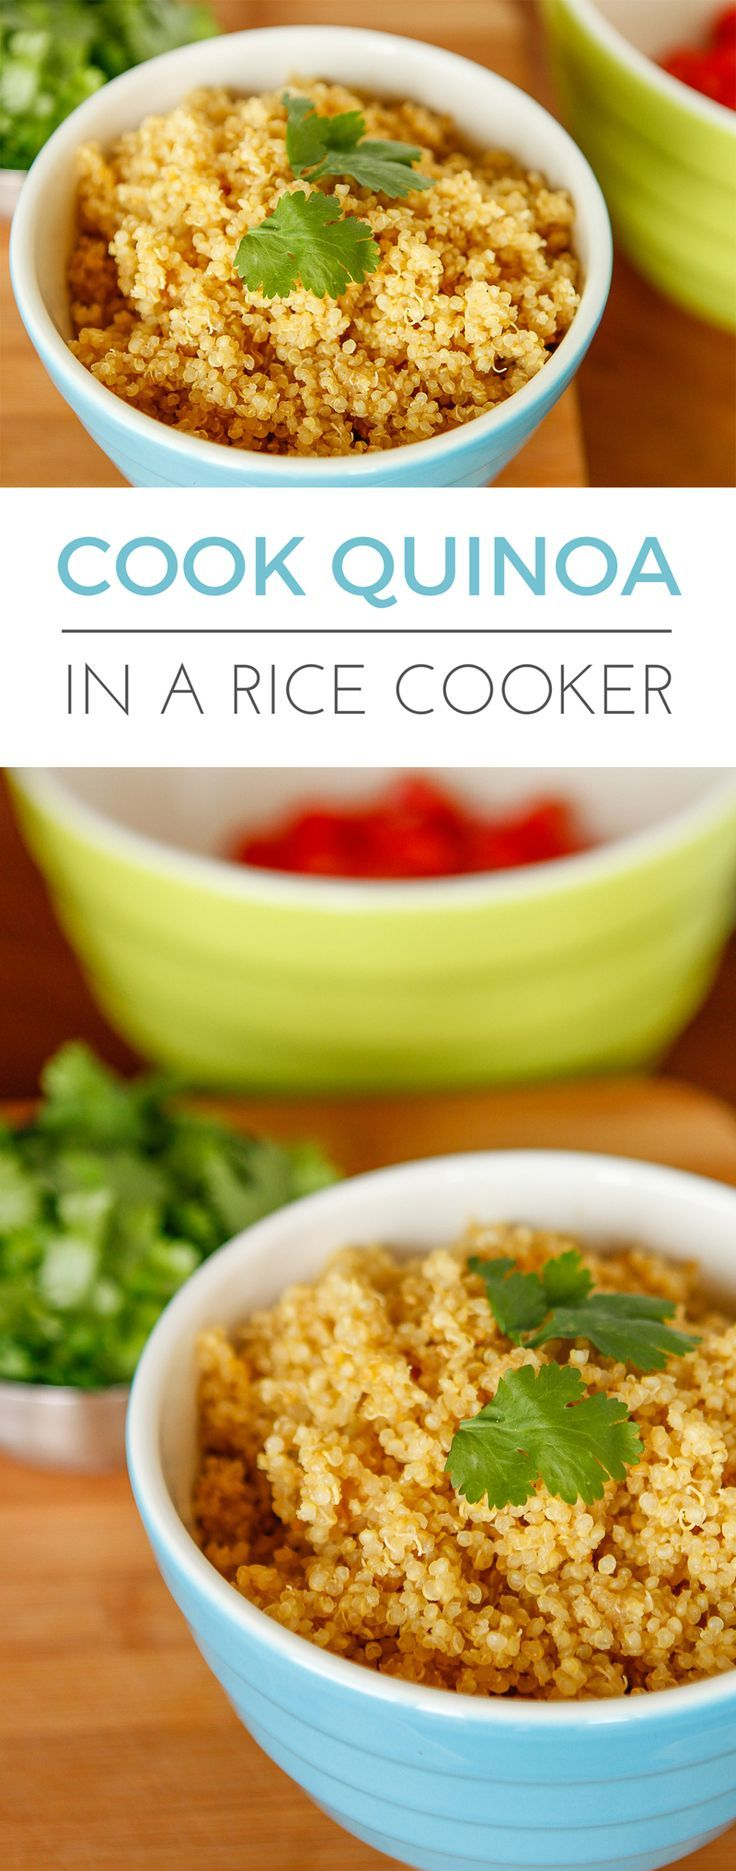 How to Cook Quinoa in a Rice Cooker -- yep, rice cookers are good for more than just rice… They make preparing delicious quinoa simple and easy too! | via @unsophisticook on unsophisticook.com #ricecookermeals